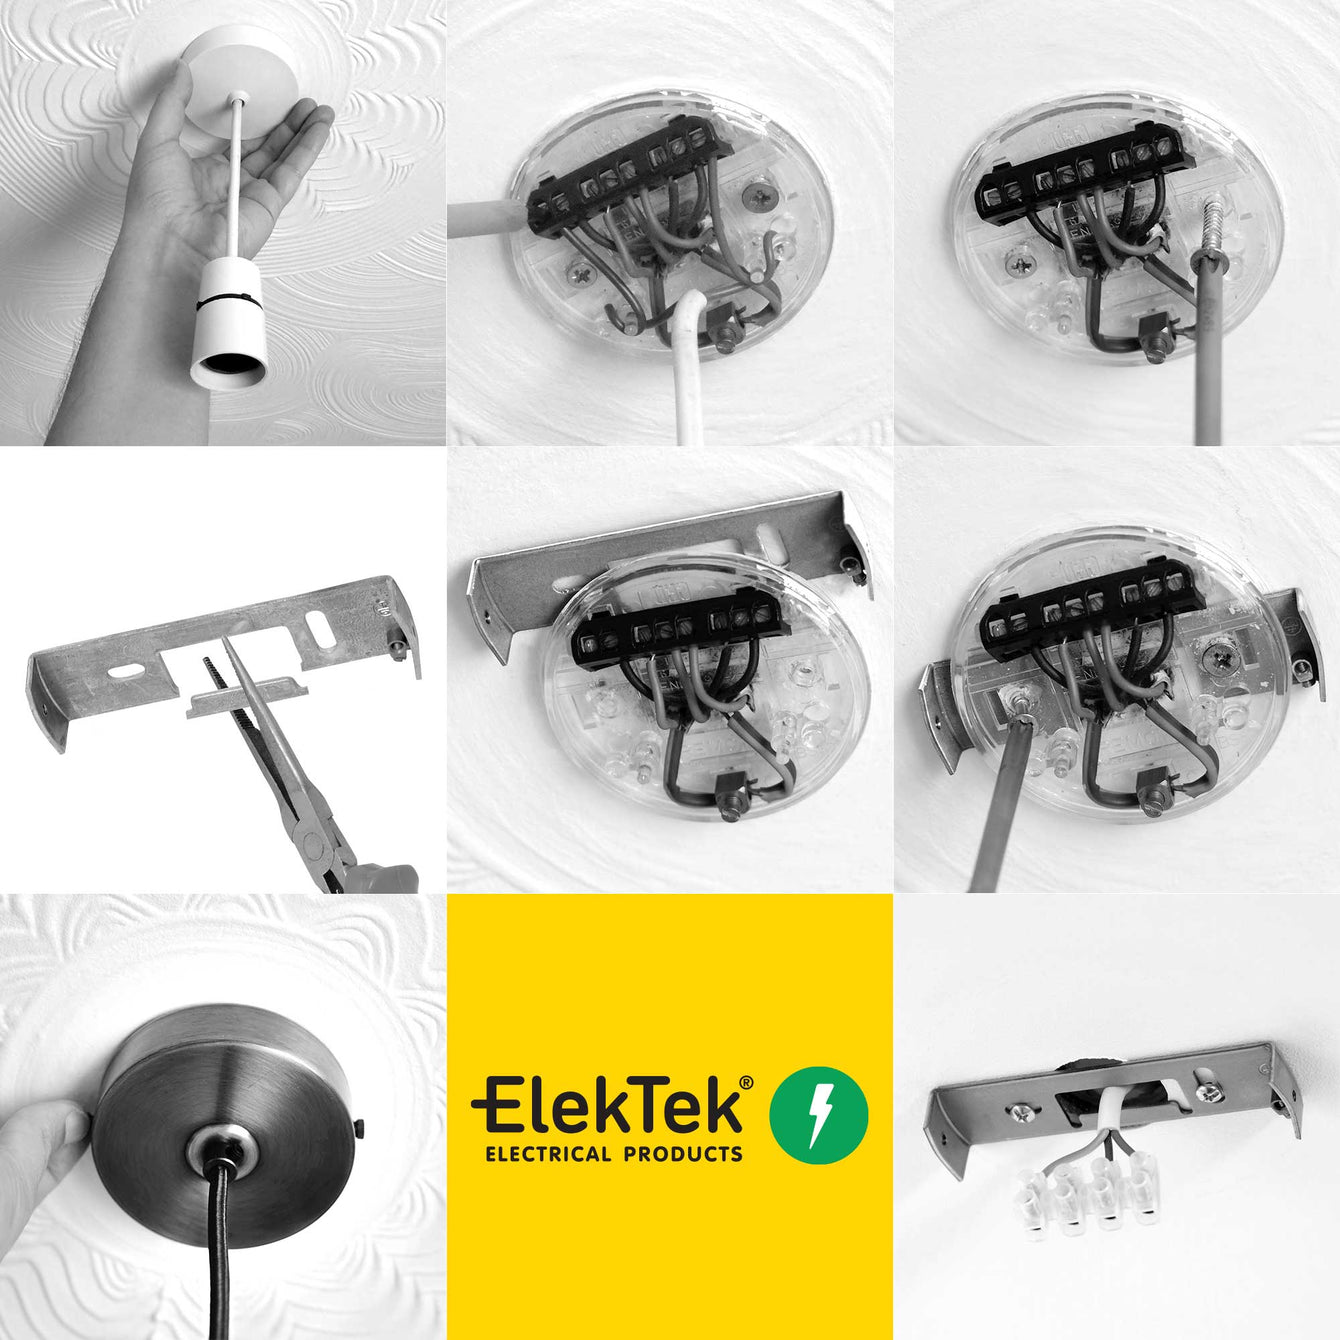 ElekTek 100mm Diameter Convex Ceiling Rose with Strap Bracket and Hook Metallic and Powder Coated Finishes Antique Copper